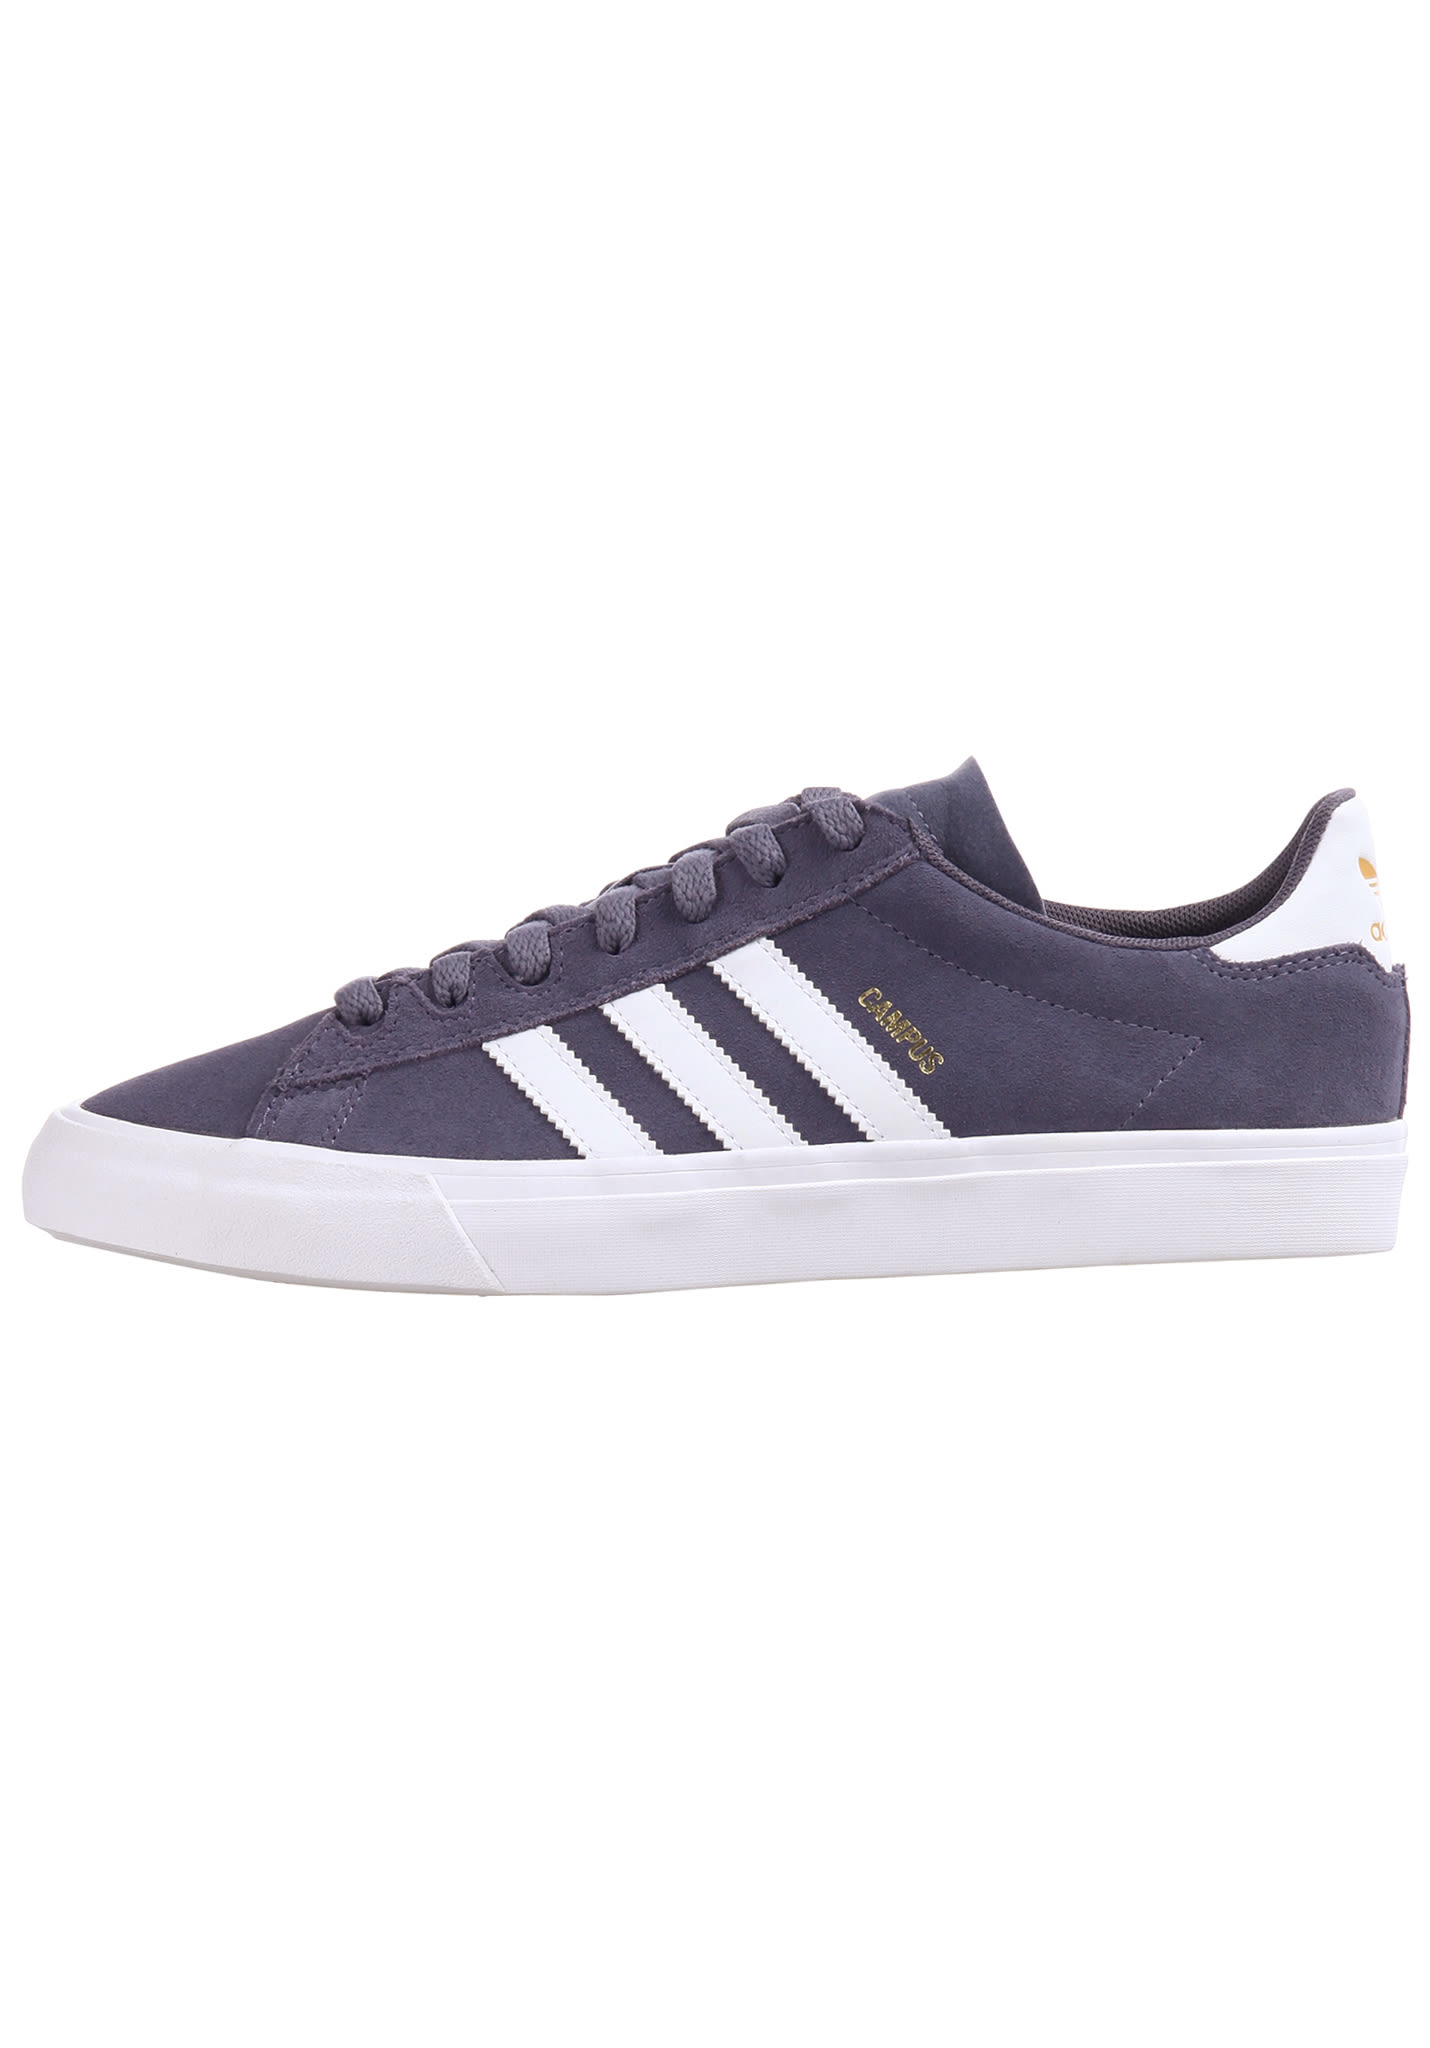 the latest 18fd4 13941 Adidas Skateboarding Campus Vulc II - Sneakers voor Heren - Blauw - Planet  Sports